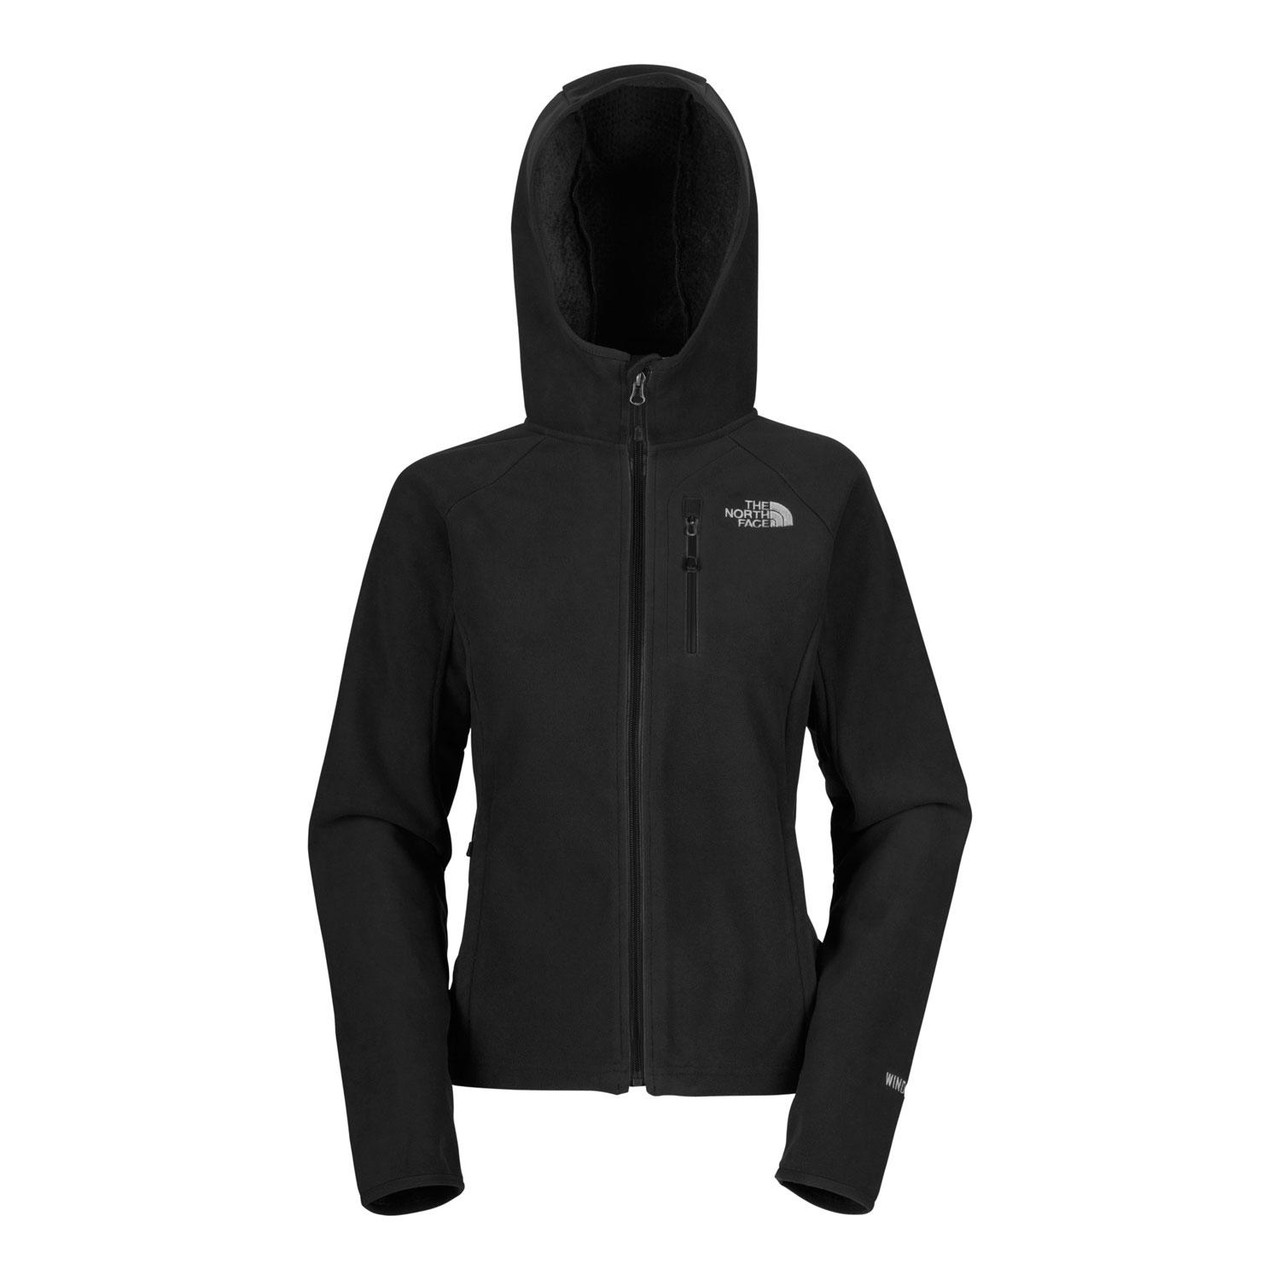 e24d16adb The North Face Womens Windwall 2 Jacket Black